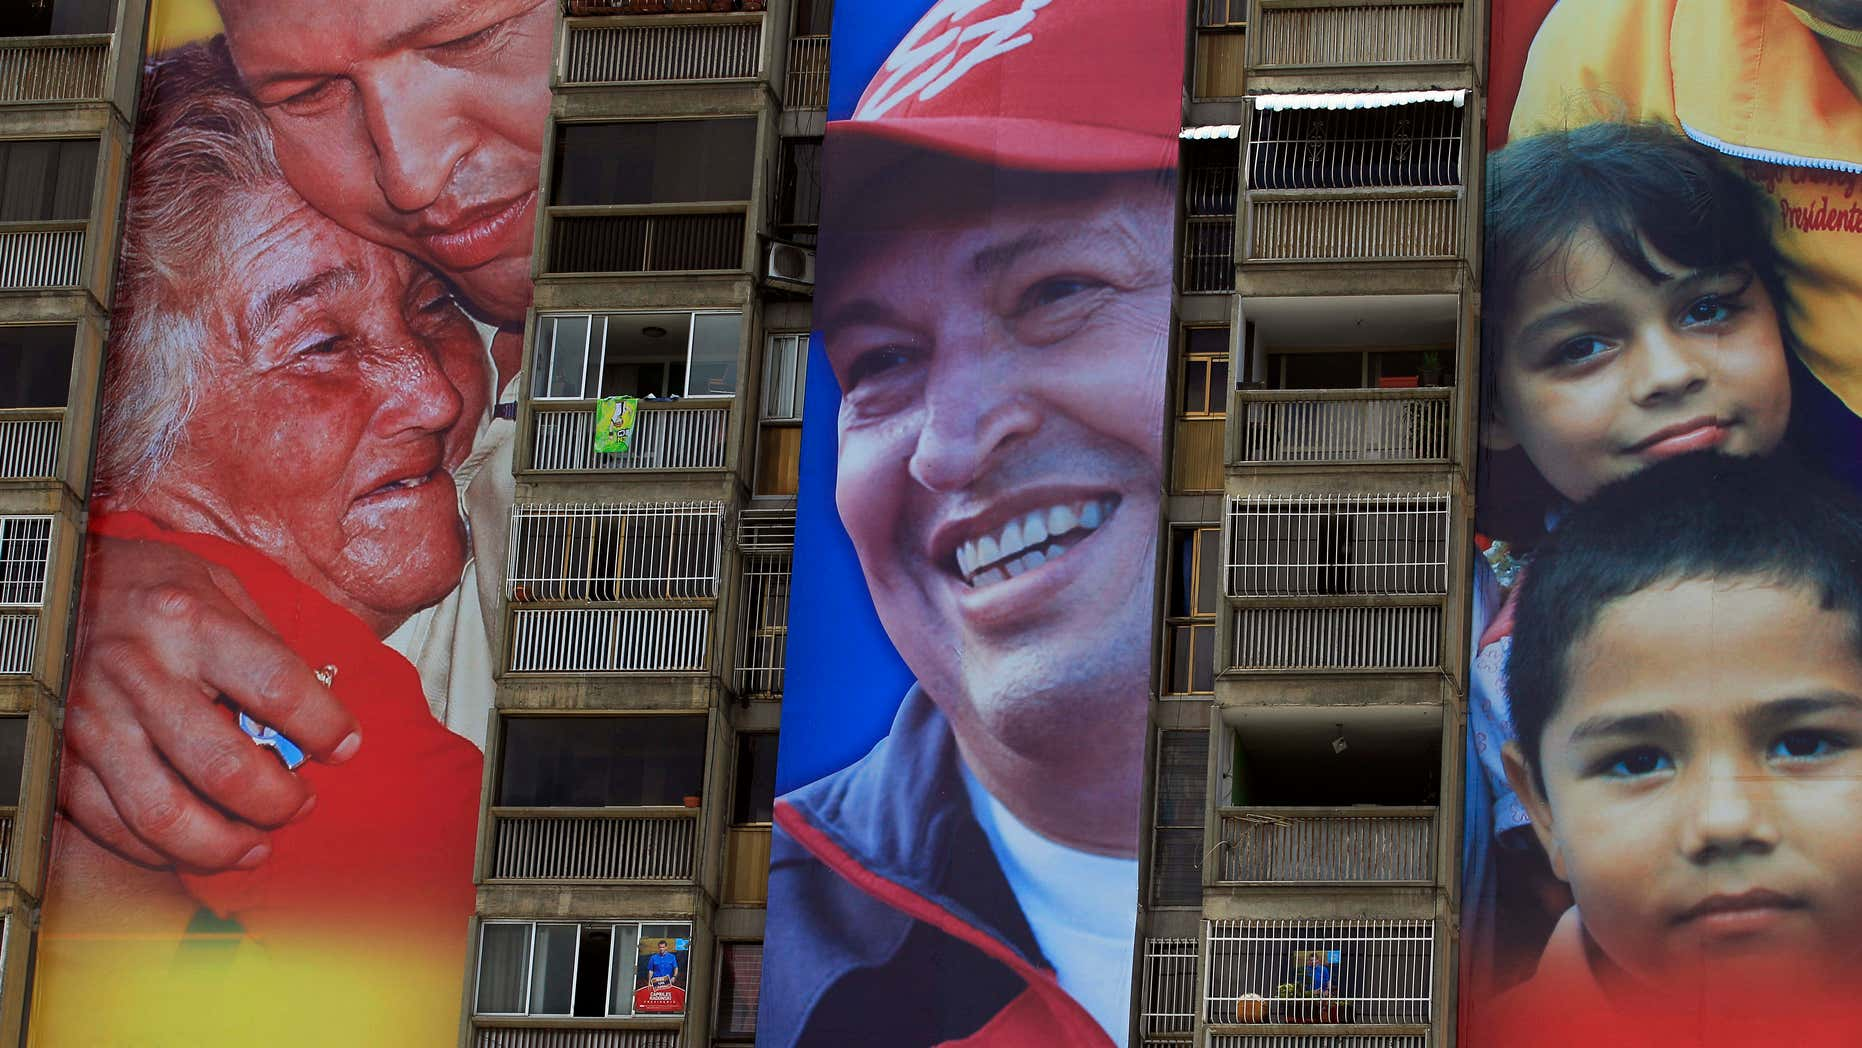 Campaign re-election posters of Venezuela's President Hugo Chavez tower over the posters of opposition presidential candidate Henrique Capriles, on an apartment building in Caracas, Venezuela, Tuesday, Aug. 21, 2012.  A little more than a month ahead of Venezuela's Oct. 7, election, Chavez enjoys clear advantages over his challenger in campaign funding and media access. While neither campaign has revealed how much it's spending, Capriles says he is in a David versus Goliath contest, facing a well-financed incumbent backed by an even richer government. (AP Photo/Fernando Llano)